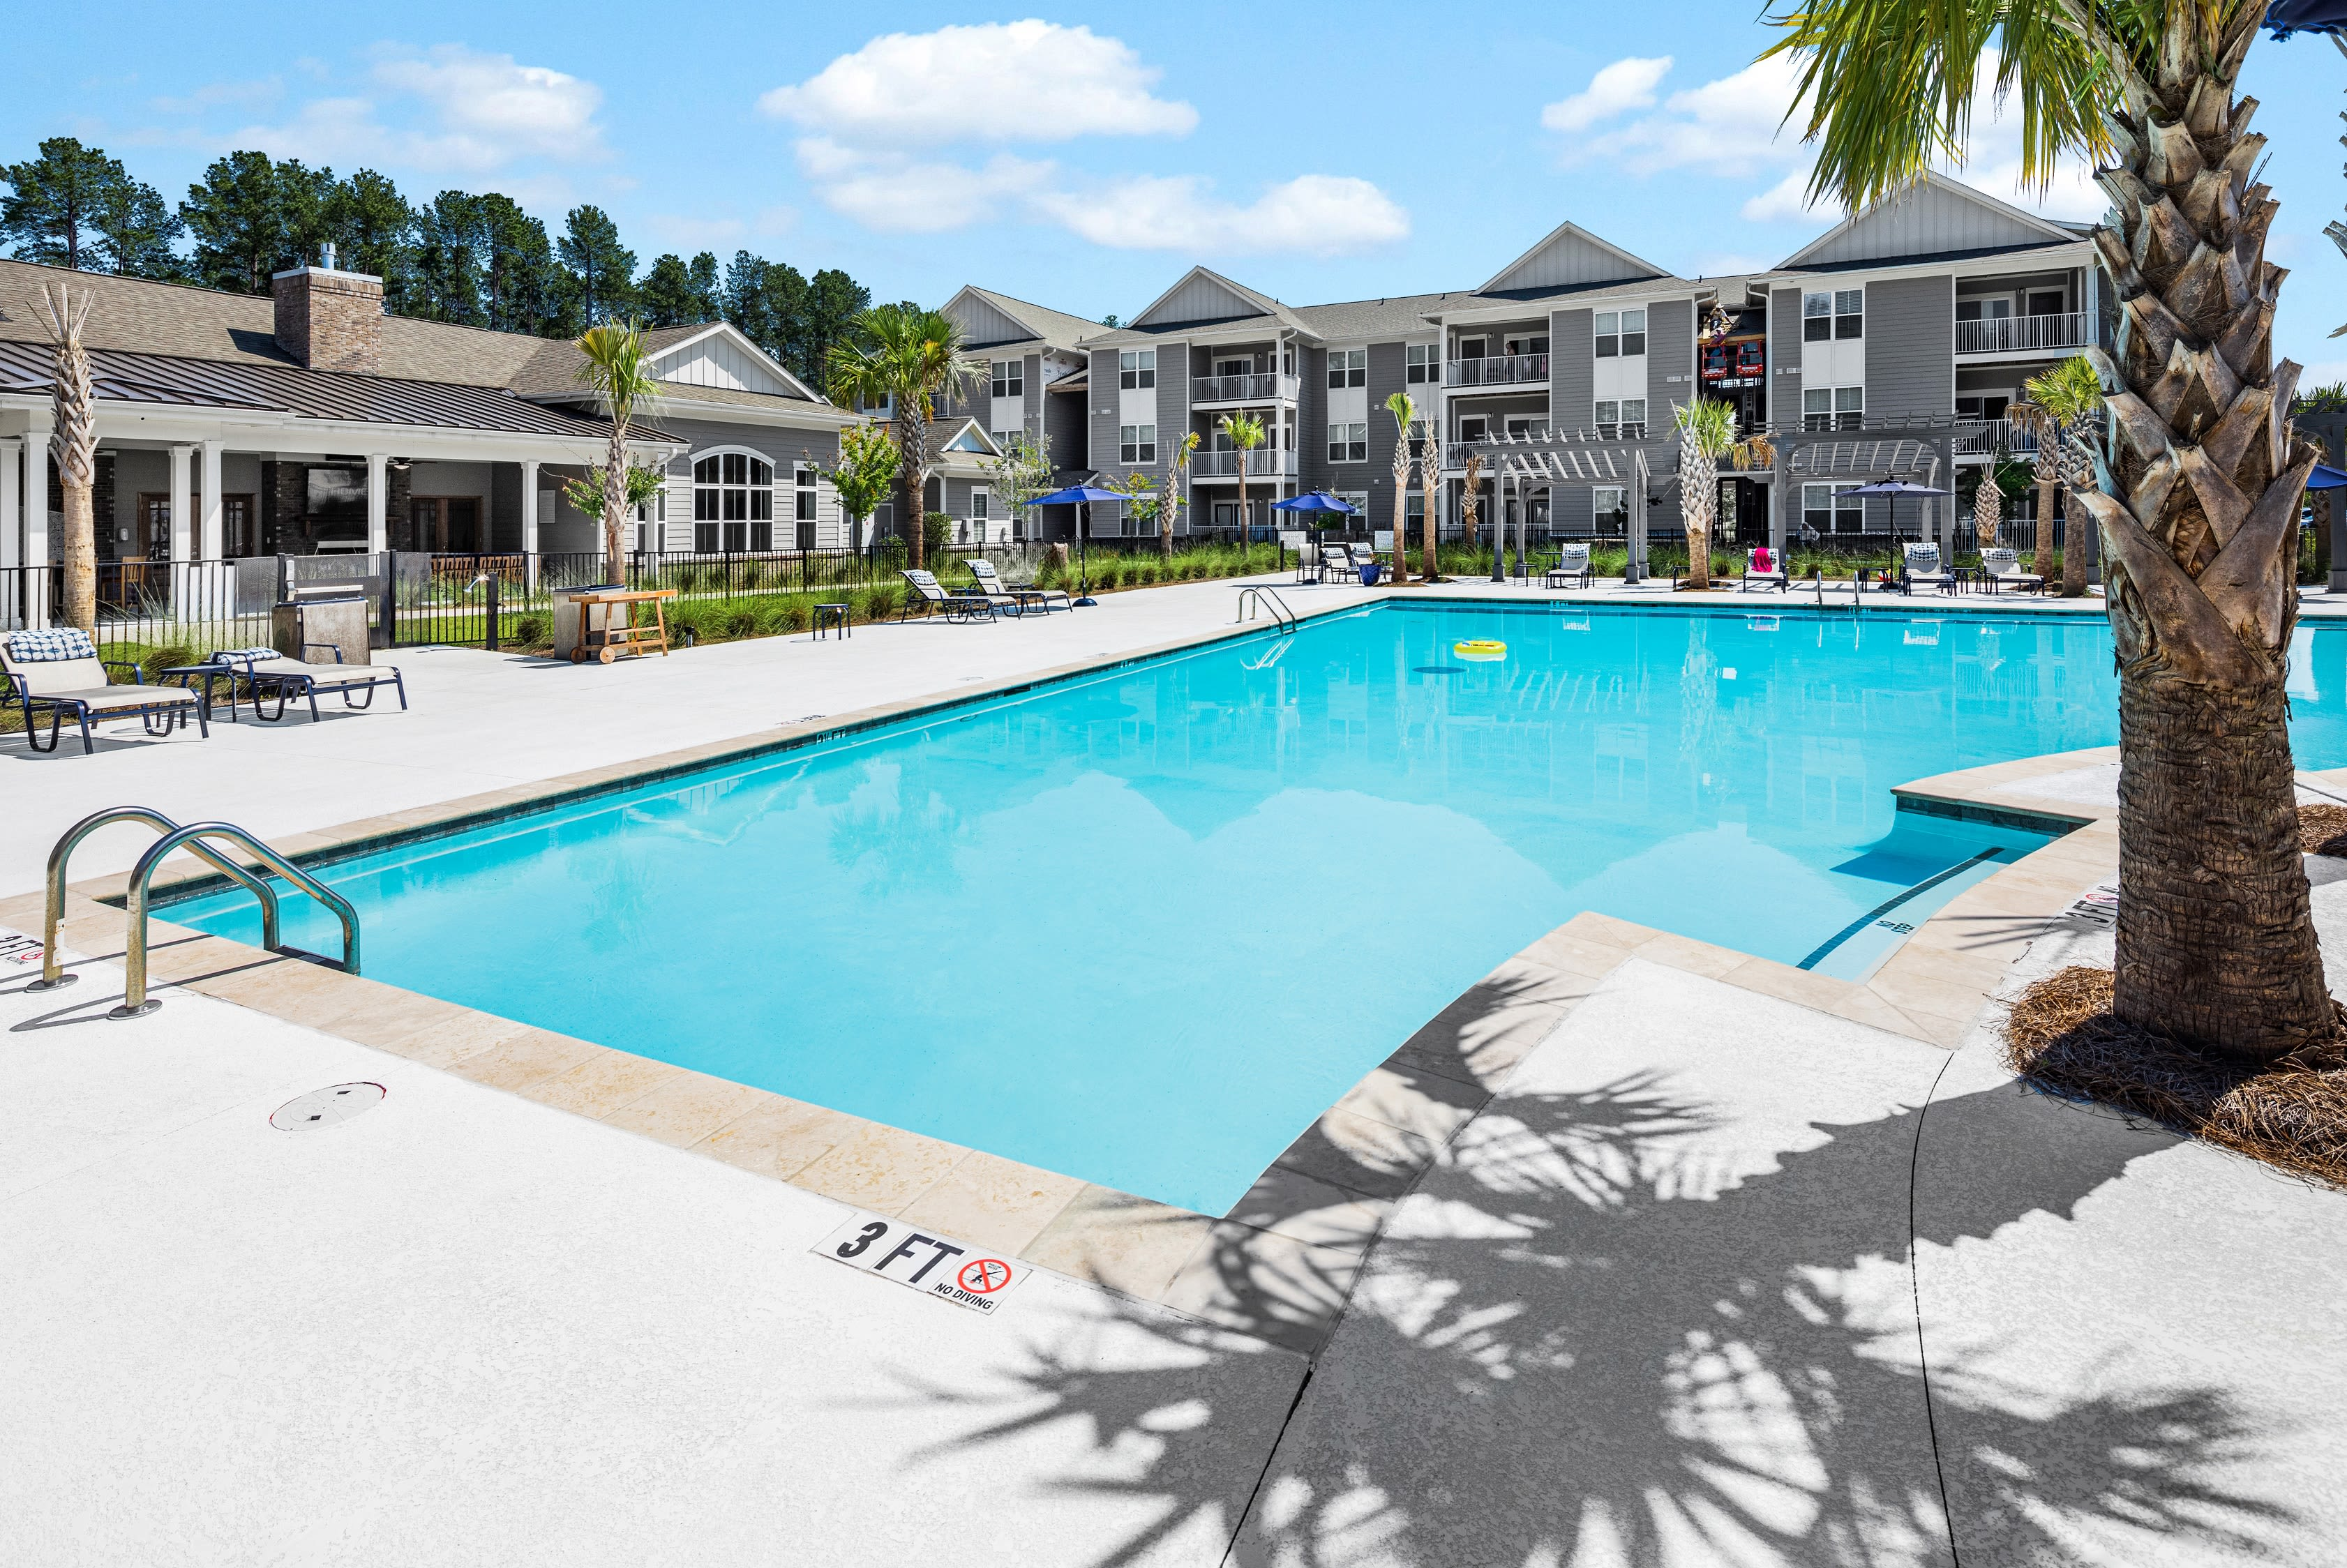 Apartments with pool at The Isaac in Summerville, South Carolina